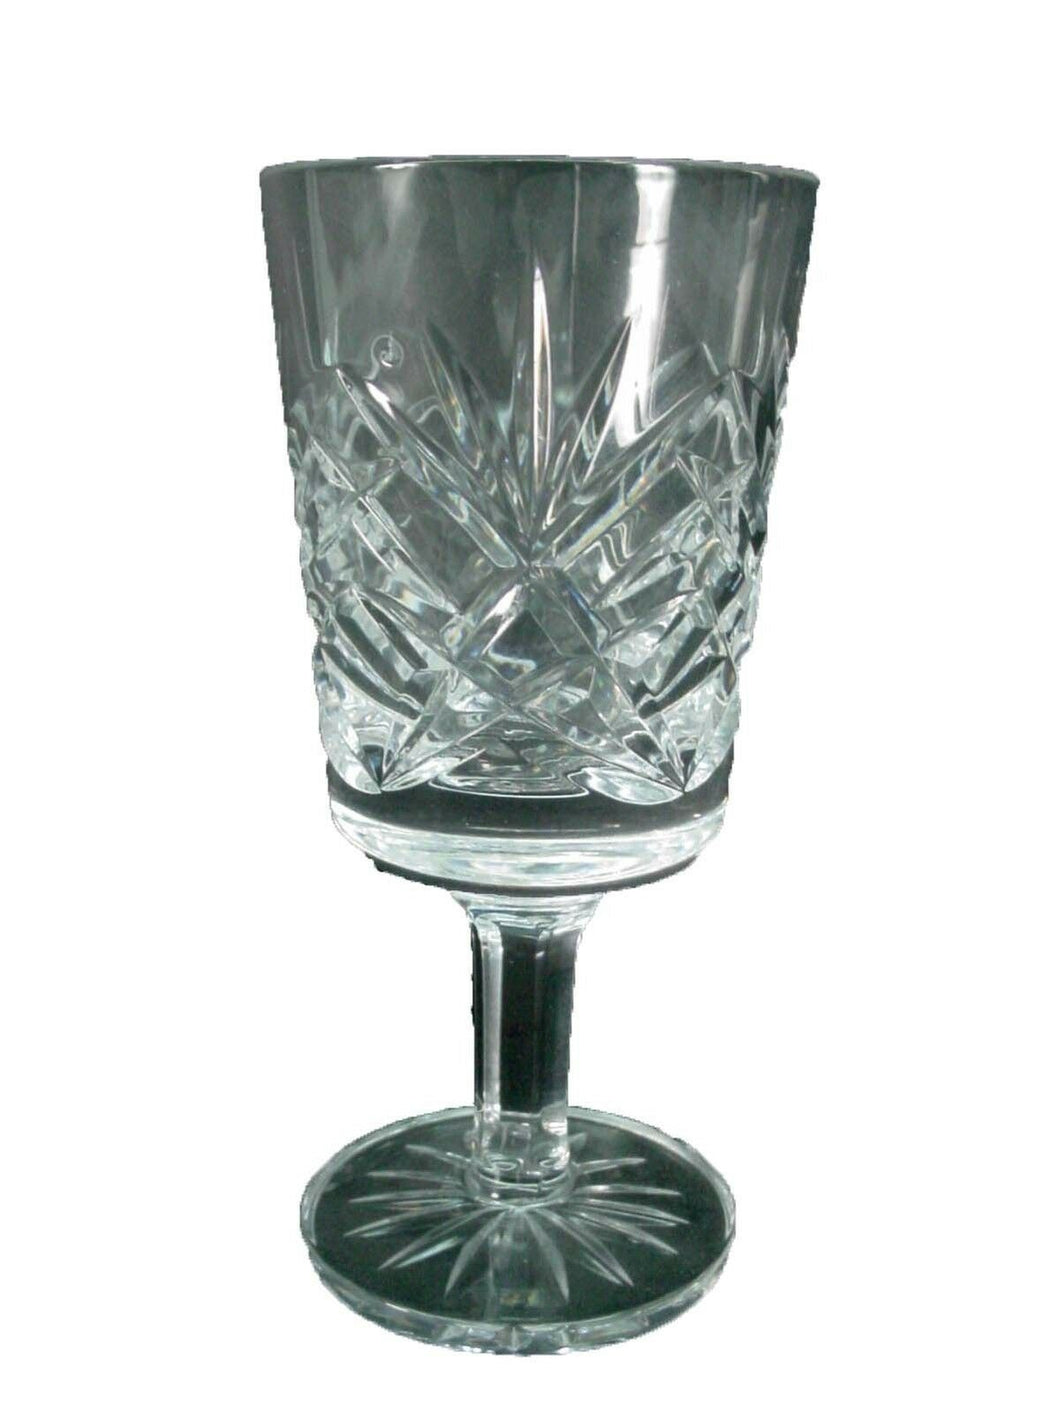 CAVAN crystal SHEELIN pattern CORDIAL GLASS or GOBLET - 4